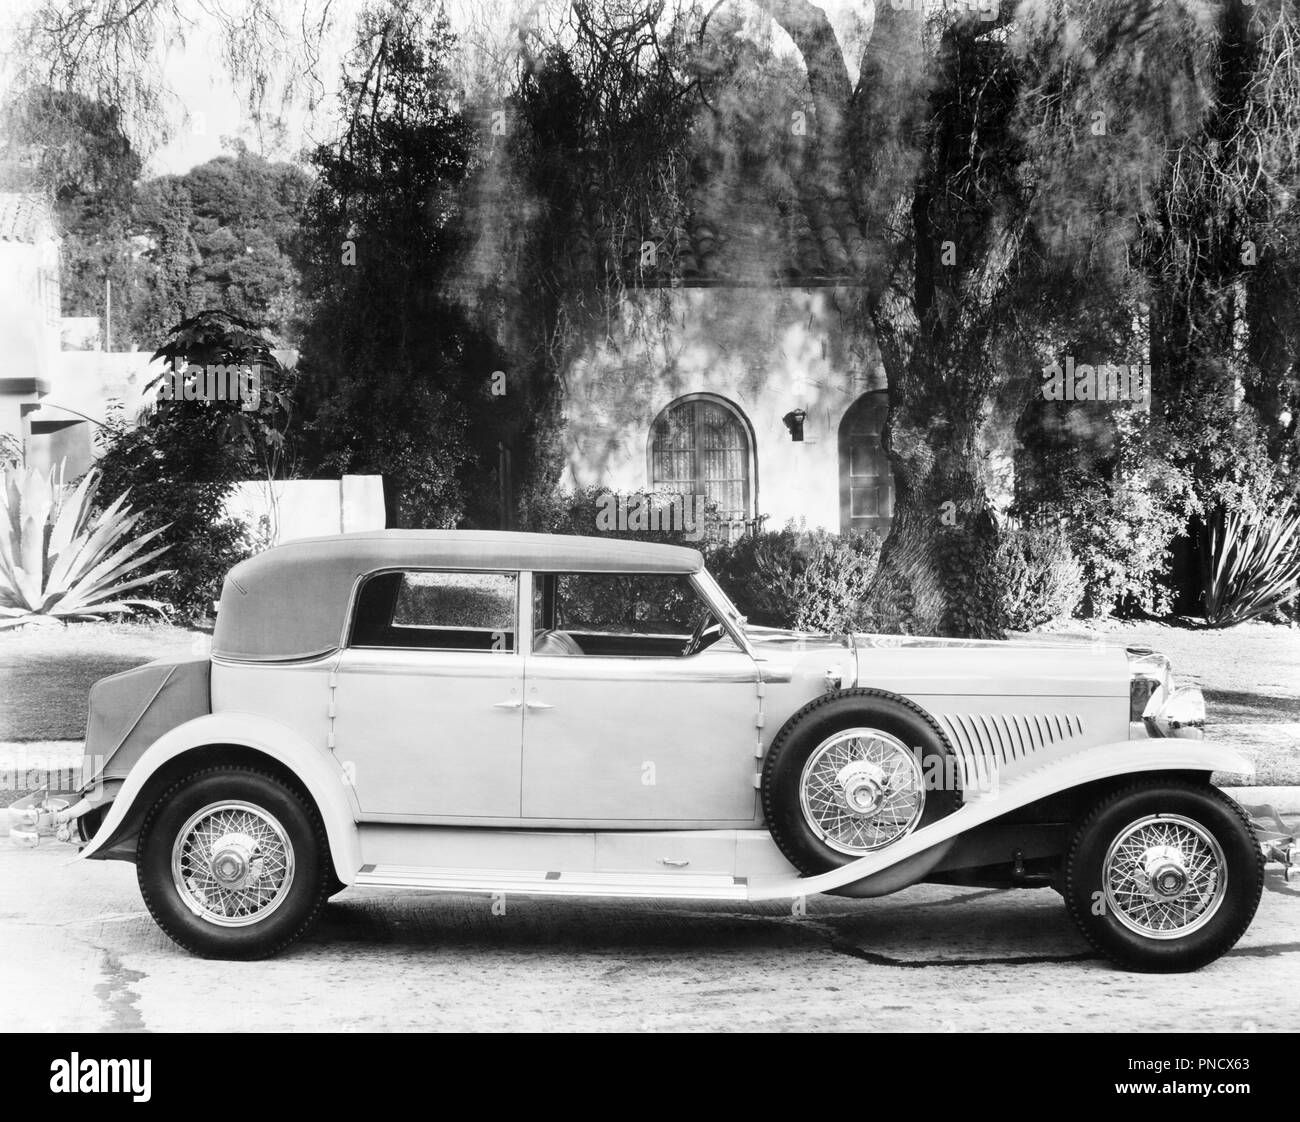 1950s CLASSIC DUESENBERG CONVERTIBLE ROADSTER AUTOMOBILE CAR - aspy5527 ASP001 HARS OLD FASHIONED - Stock Image